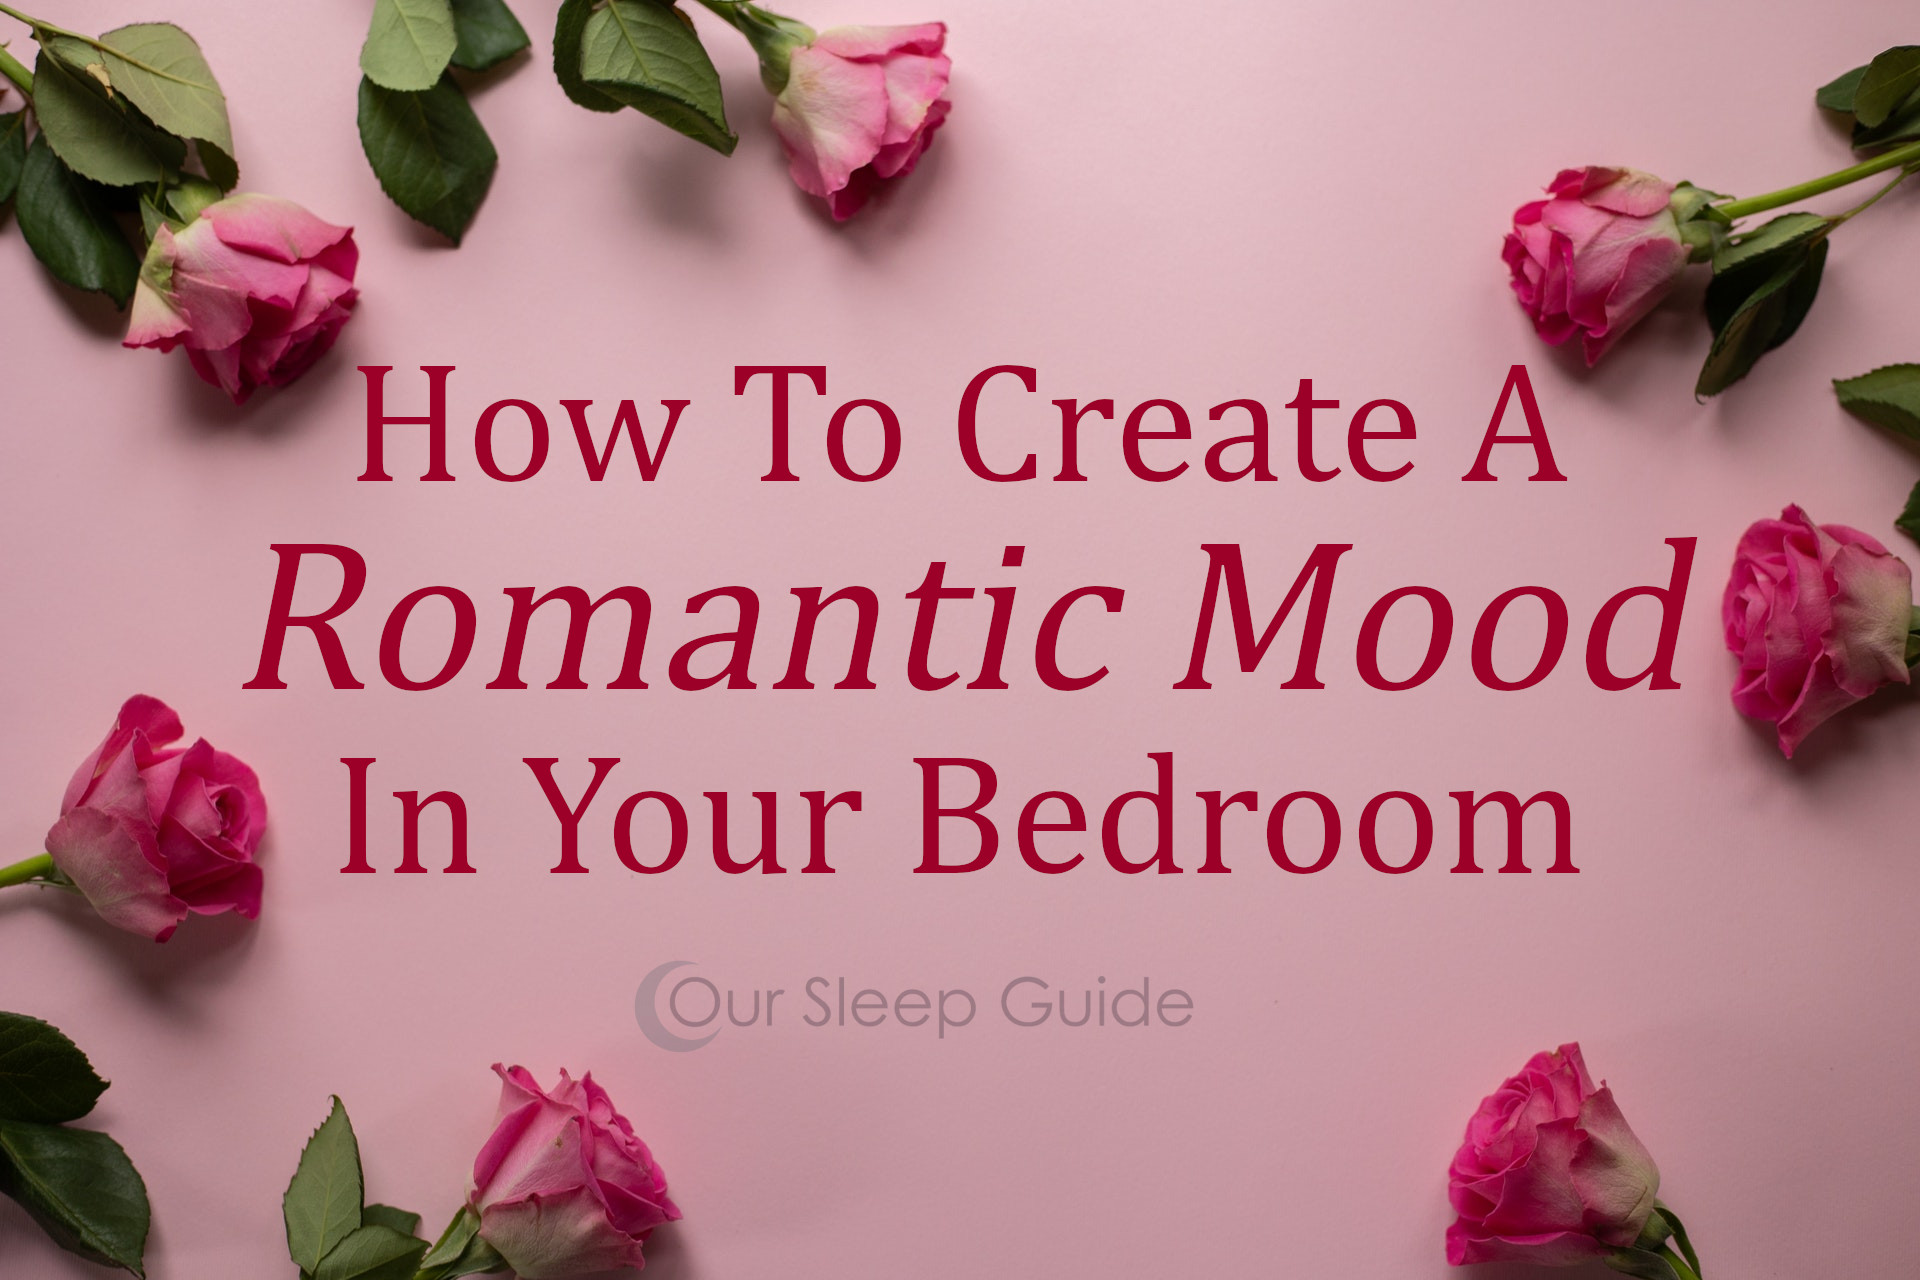 How To Make Your Bedroom More Intimate